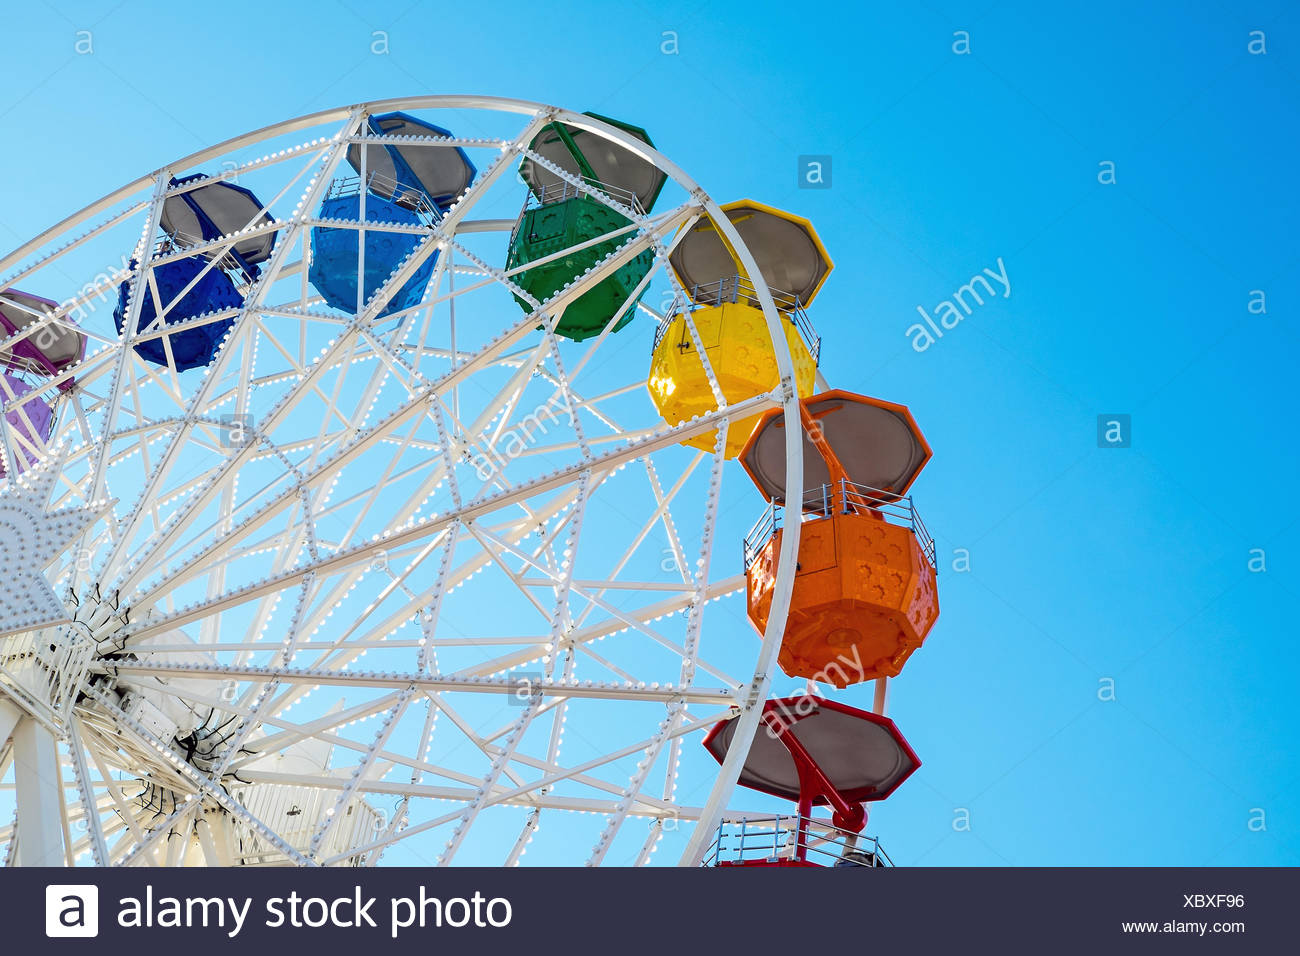 Detail of a colorful ferris wheel seen at a fair - Stock Image